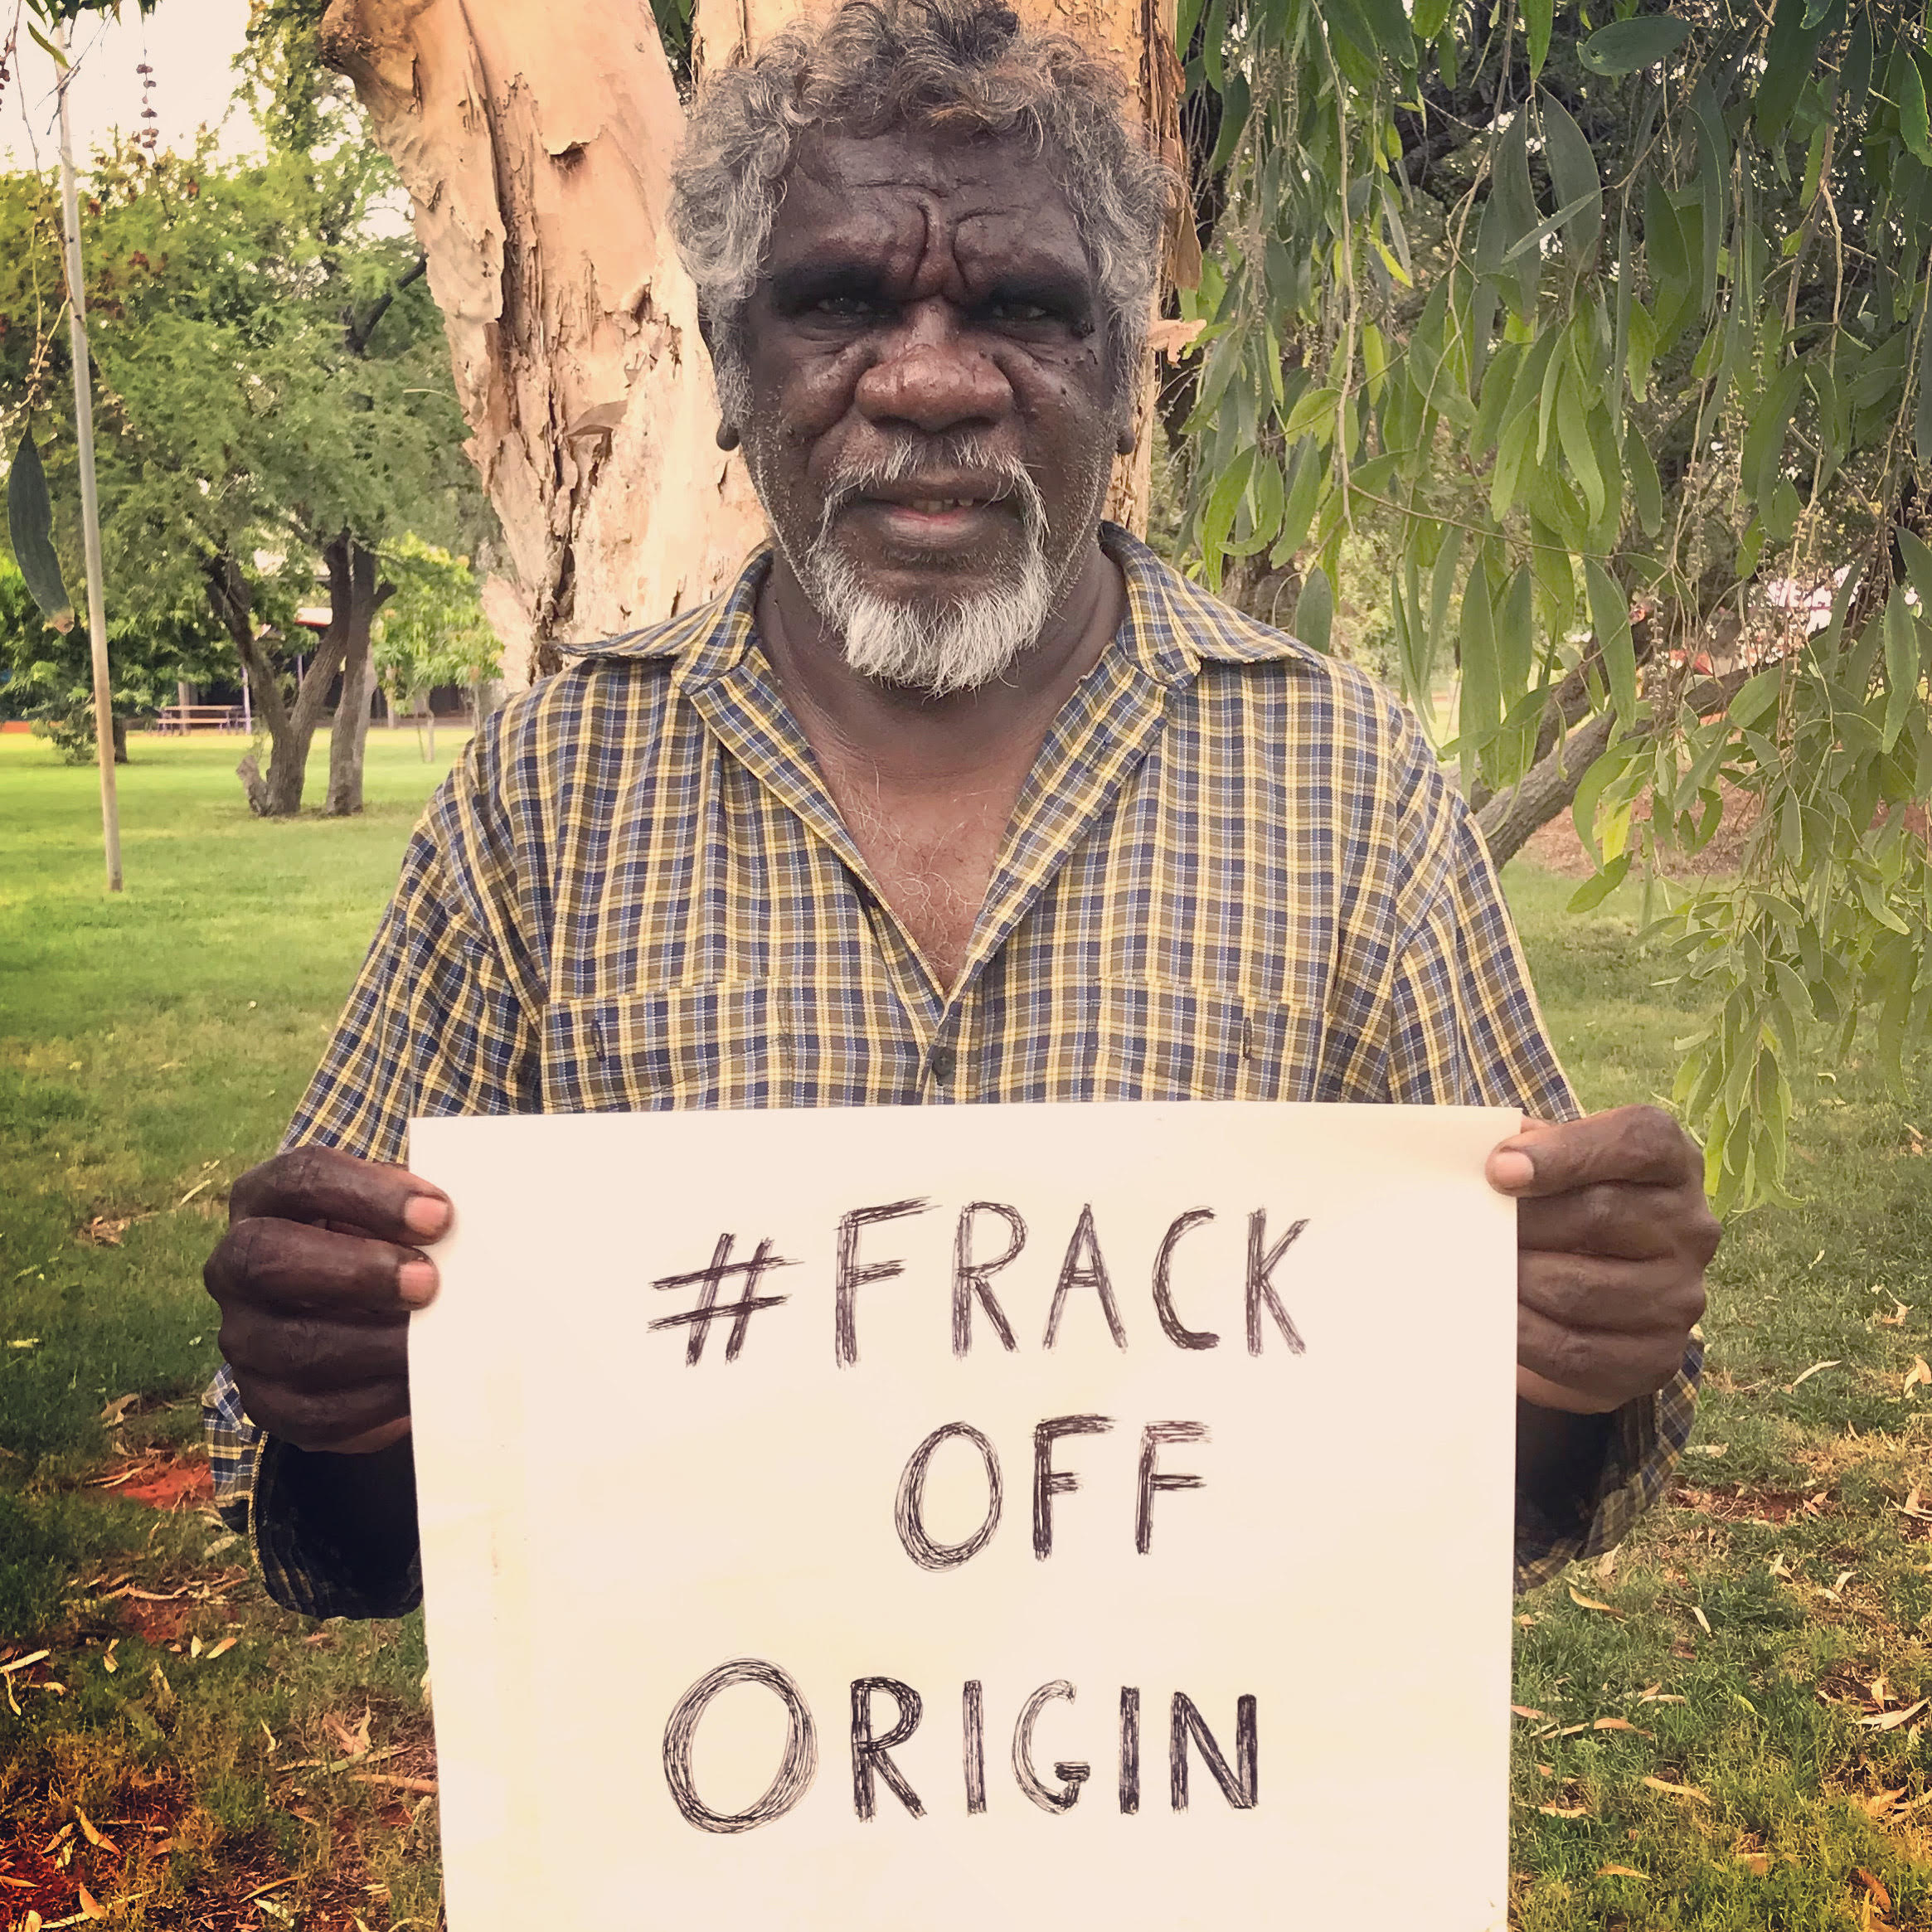 Mudburra Traditional Owner and Native Title Holder Ray Dimakarri Dixon from Marlinja NT holding a handwritten sign that says #frack off origin